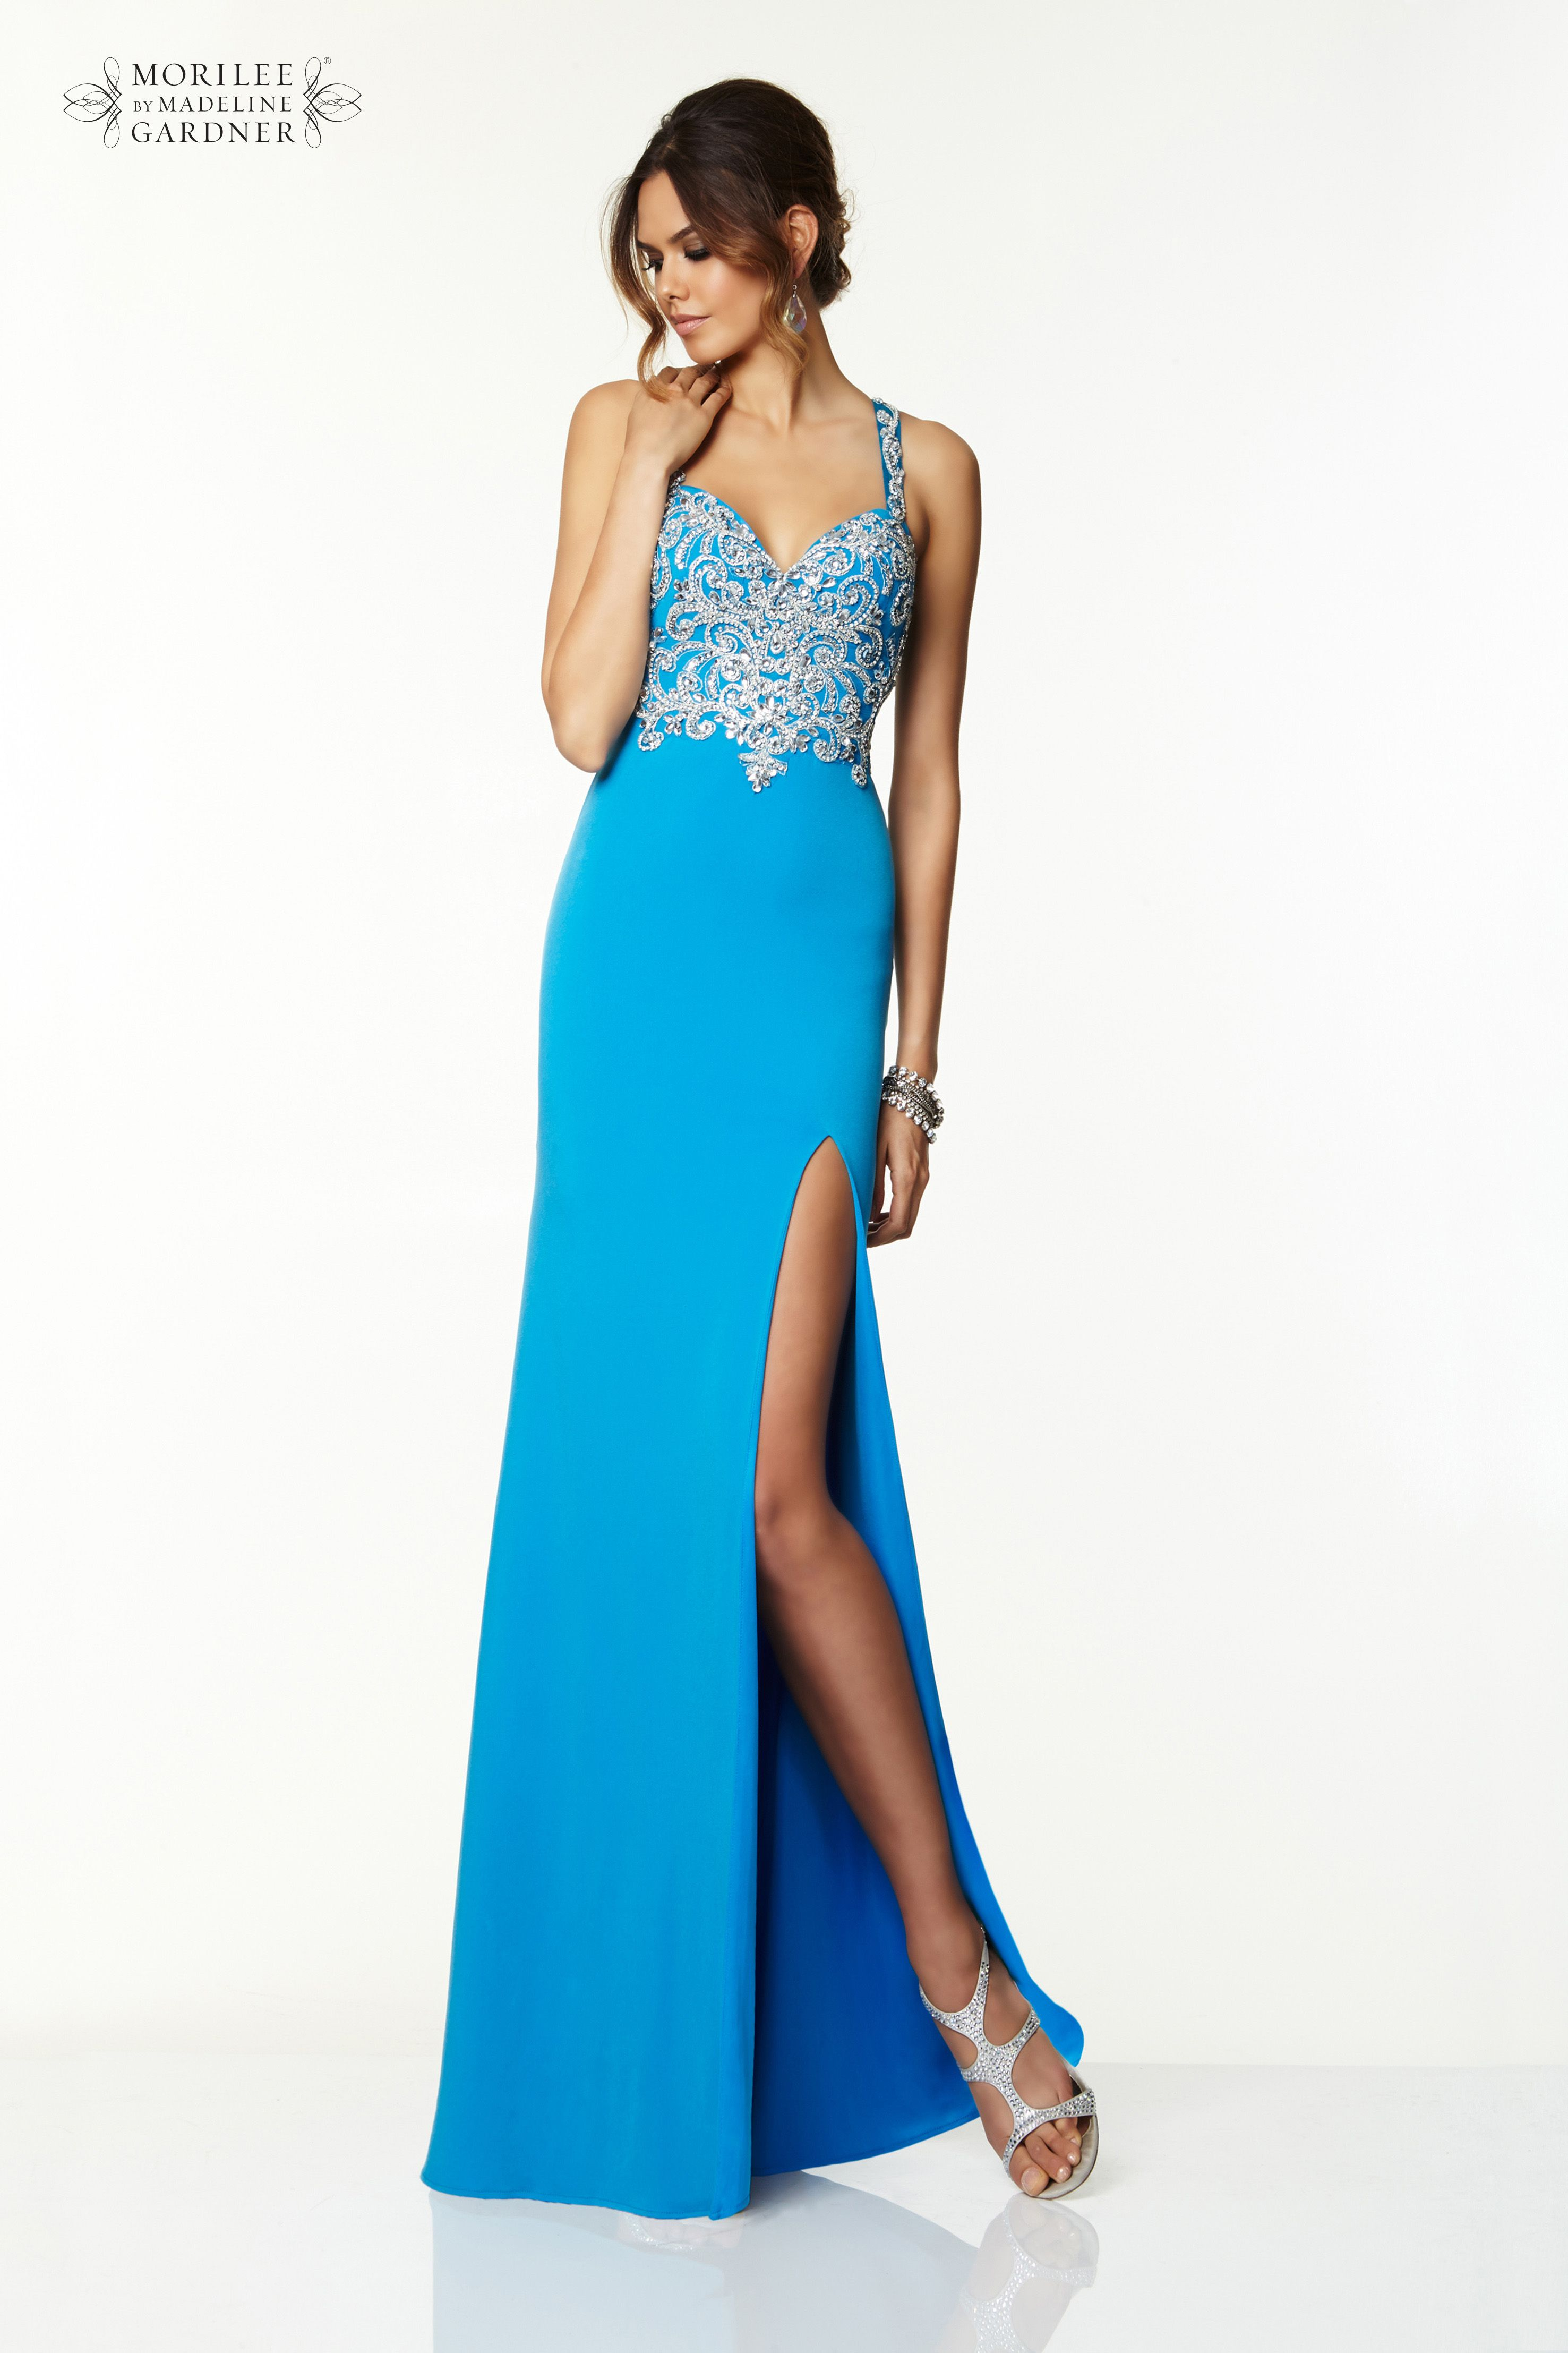 Mori Lee Paparazzi Prom Dress - Style 97057 - Available in Black ...